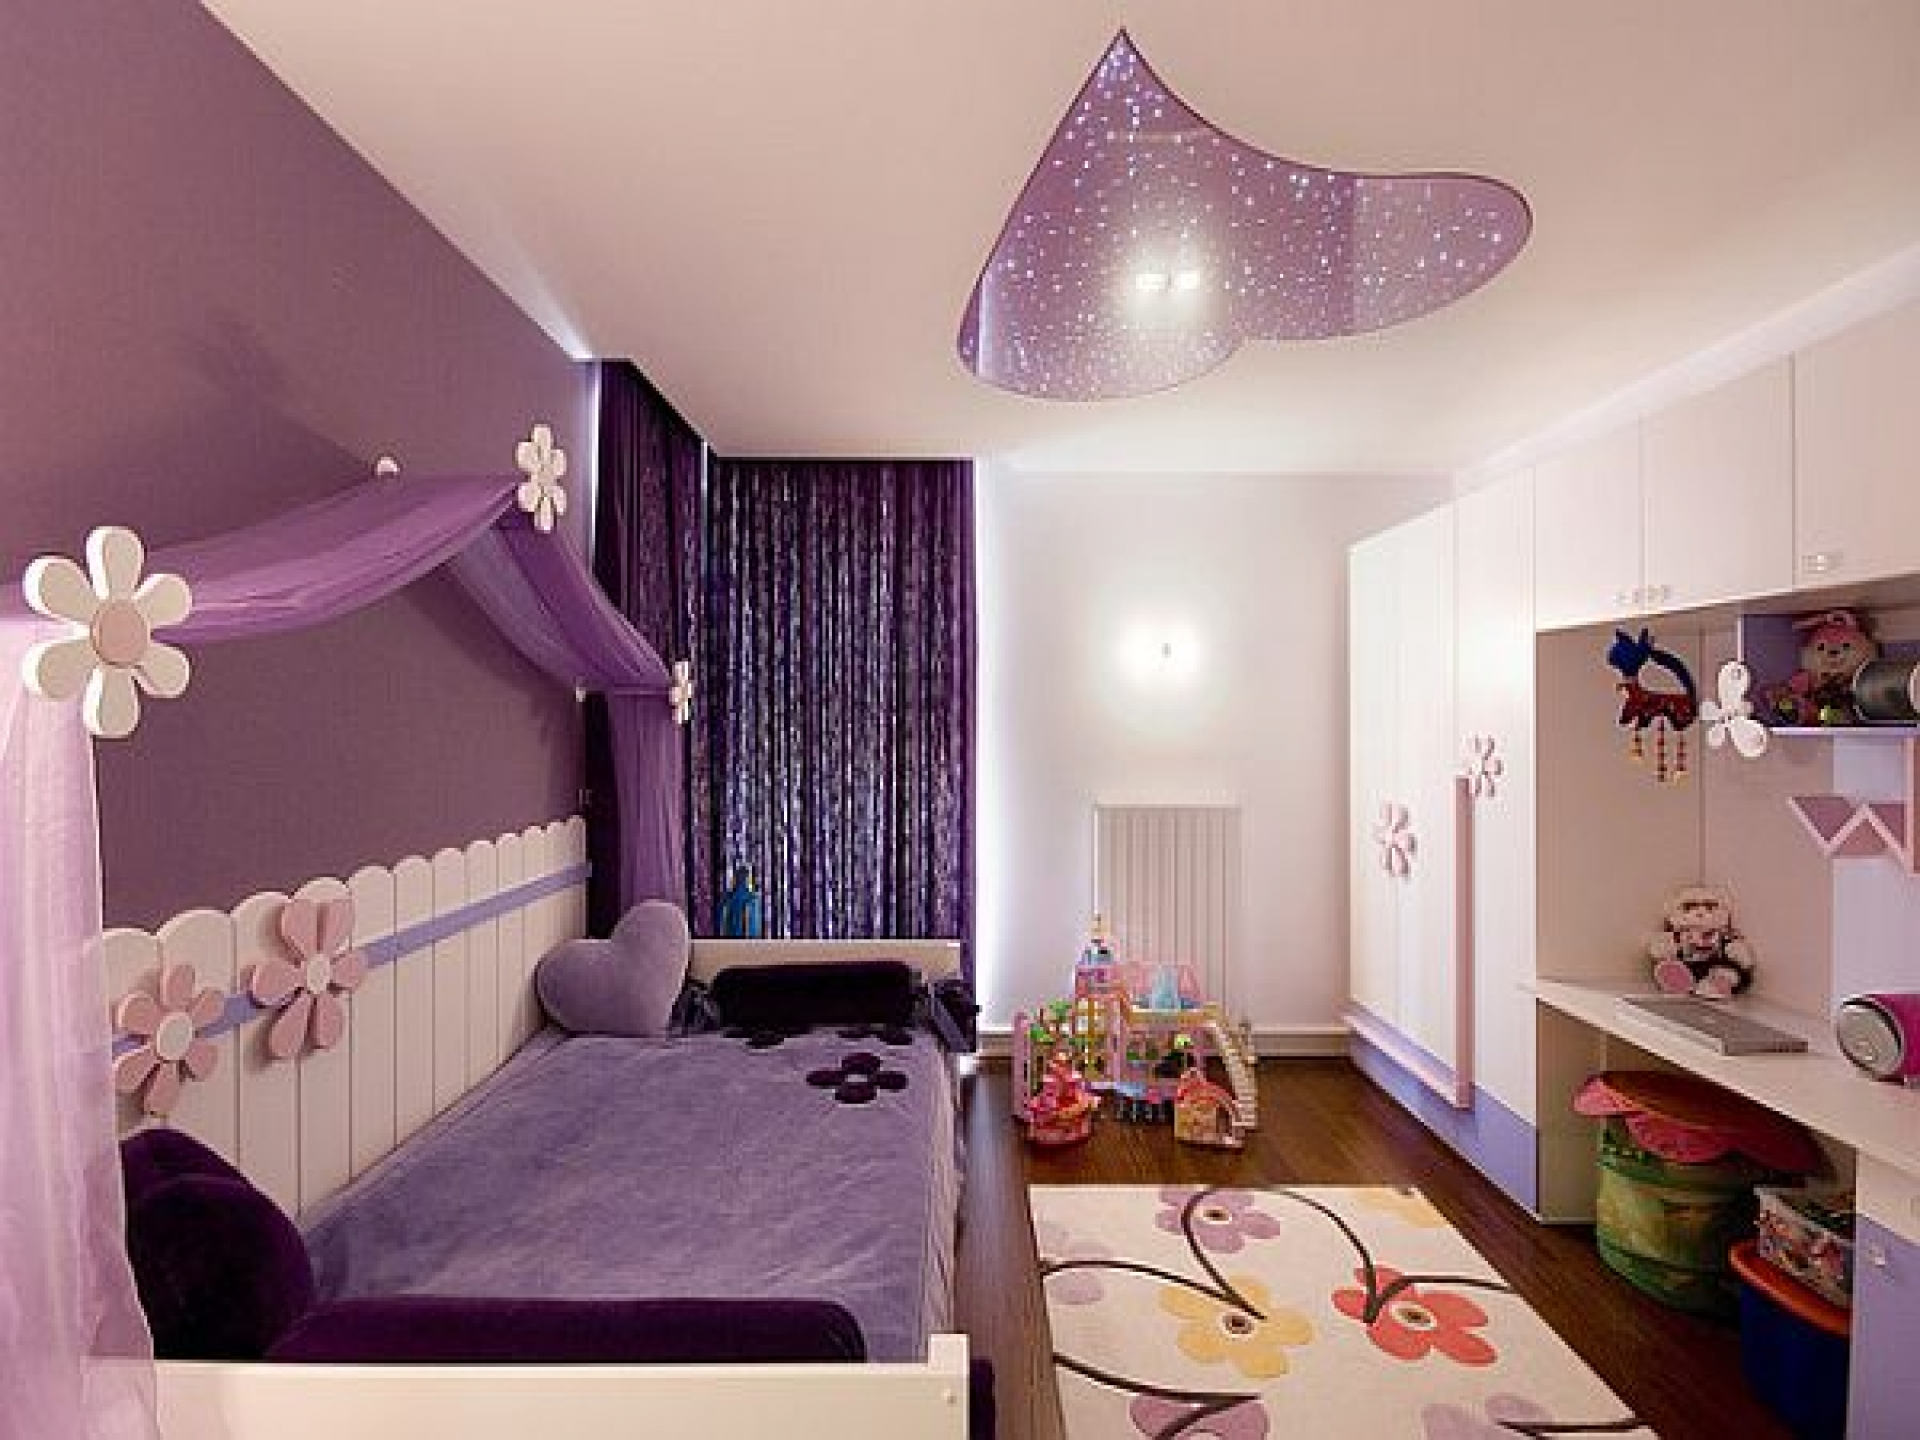 Purple Bedroom Idea The Wide Ranges Of Inspiring Purple Bedroom Ideas And Also Helpful